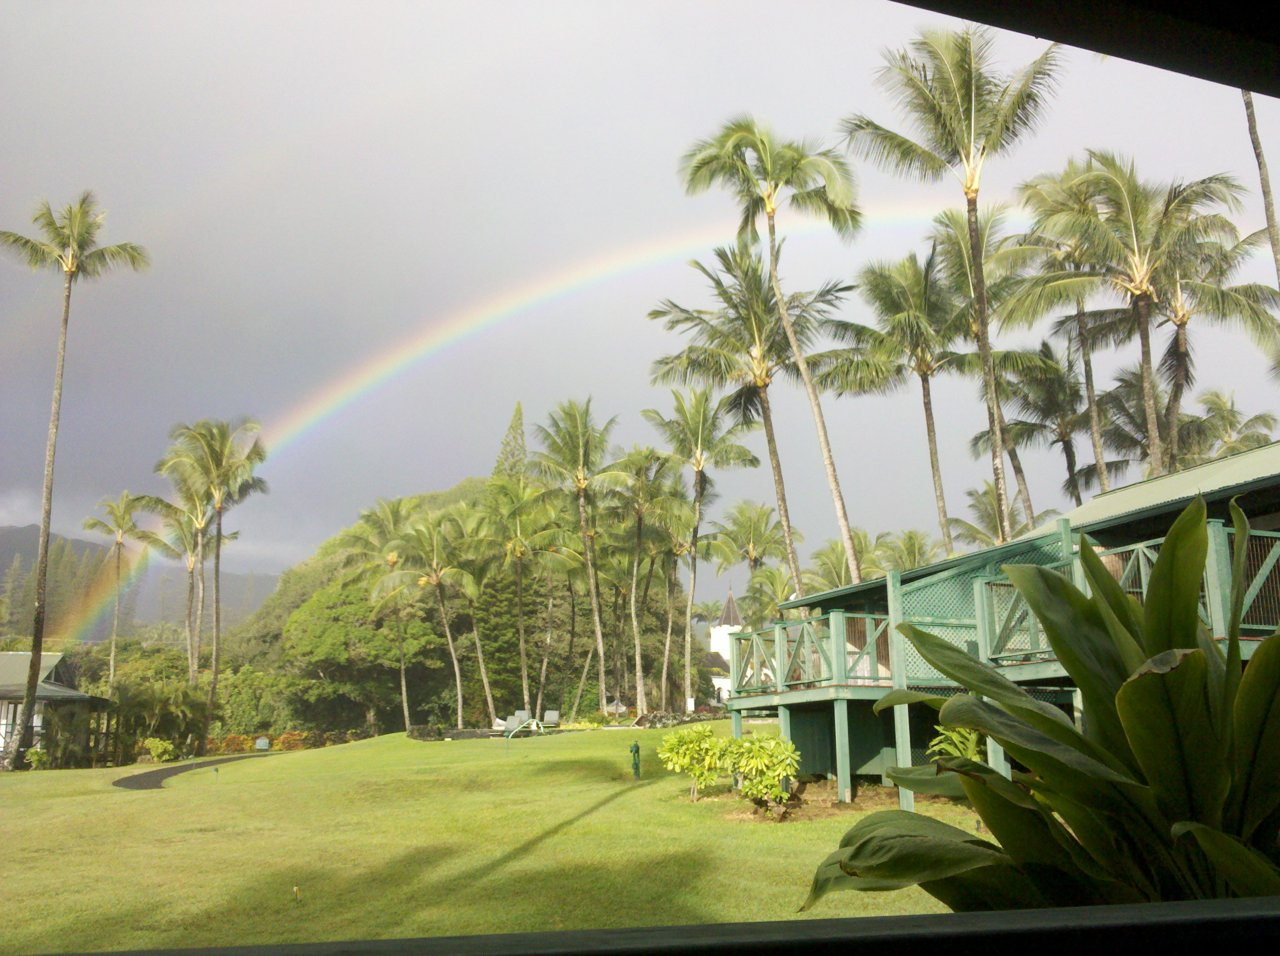 Waking up to the serenity of a rainbow overhead. Frifotos is a weekly Twitter chat started by @Epste